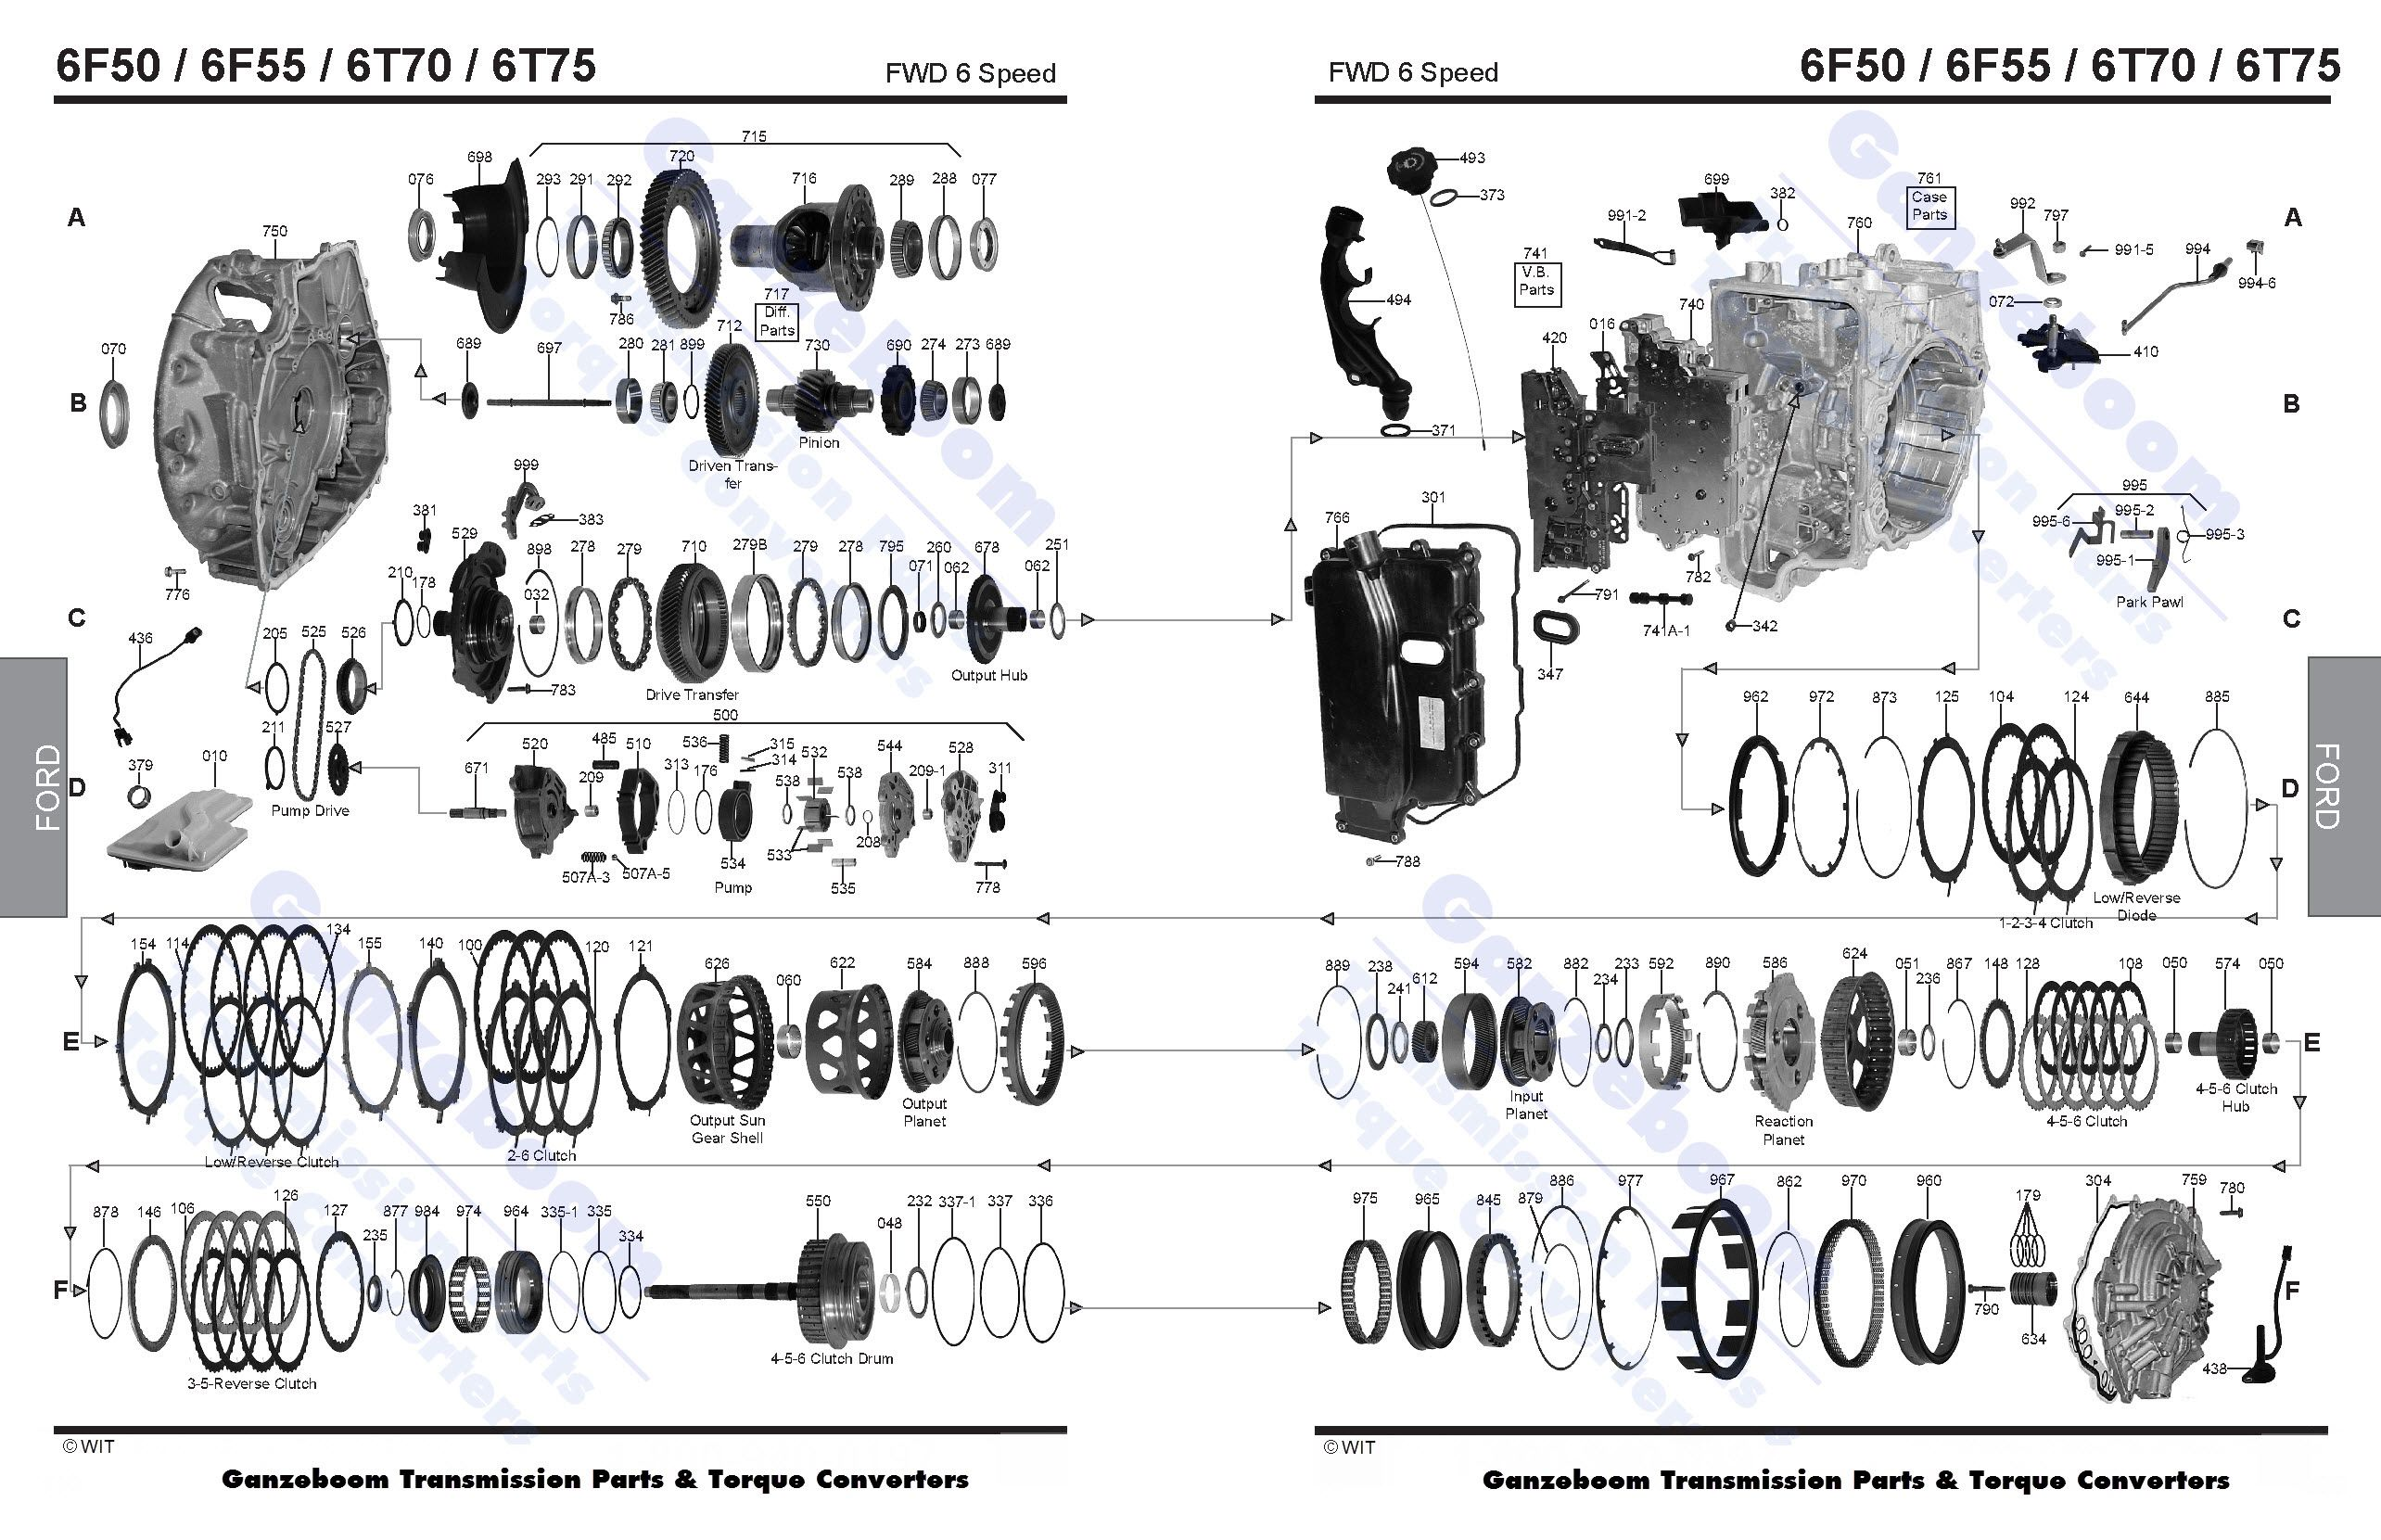 hight resolution of 6t70 transmission exploded view likewise 2012 saturn outlook likewise 6t70 transmission diagram further automatic transmission rebuild manual together with